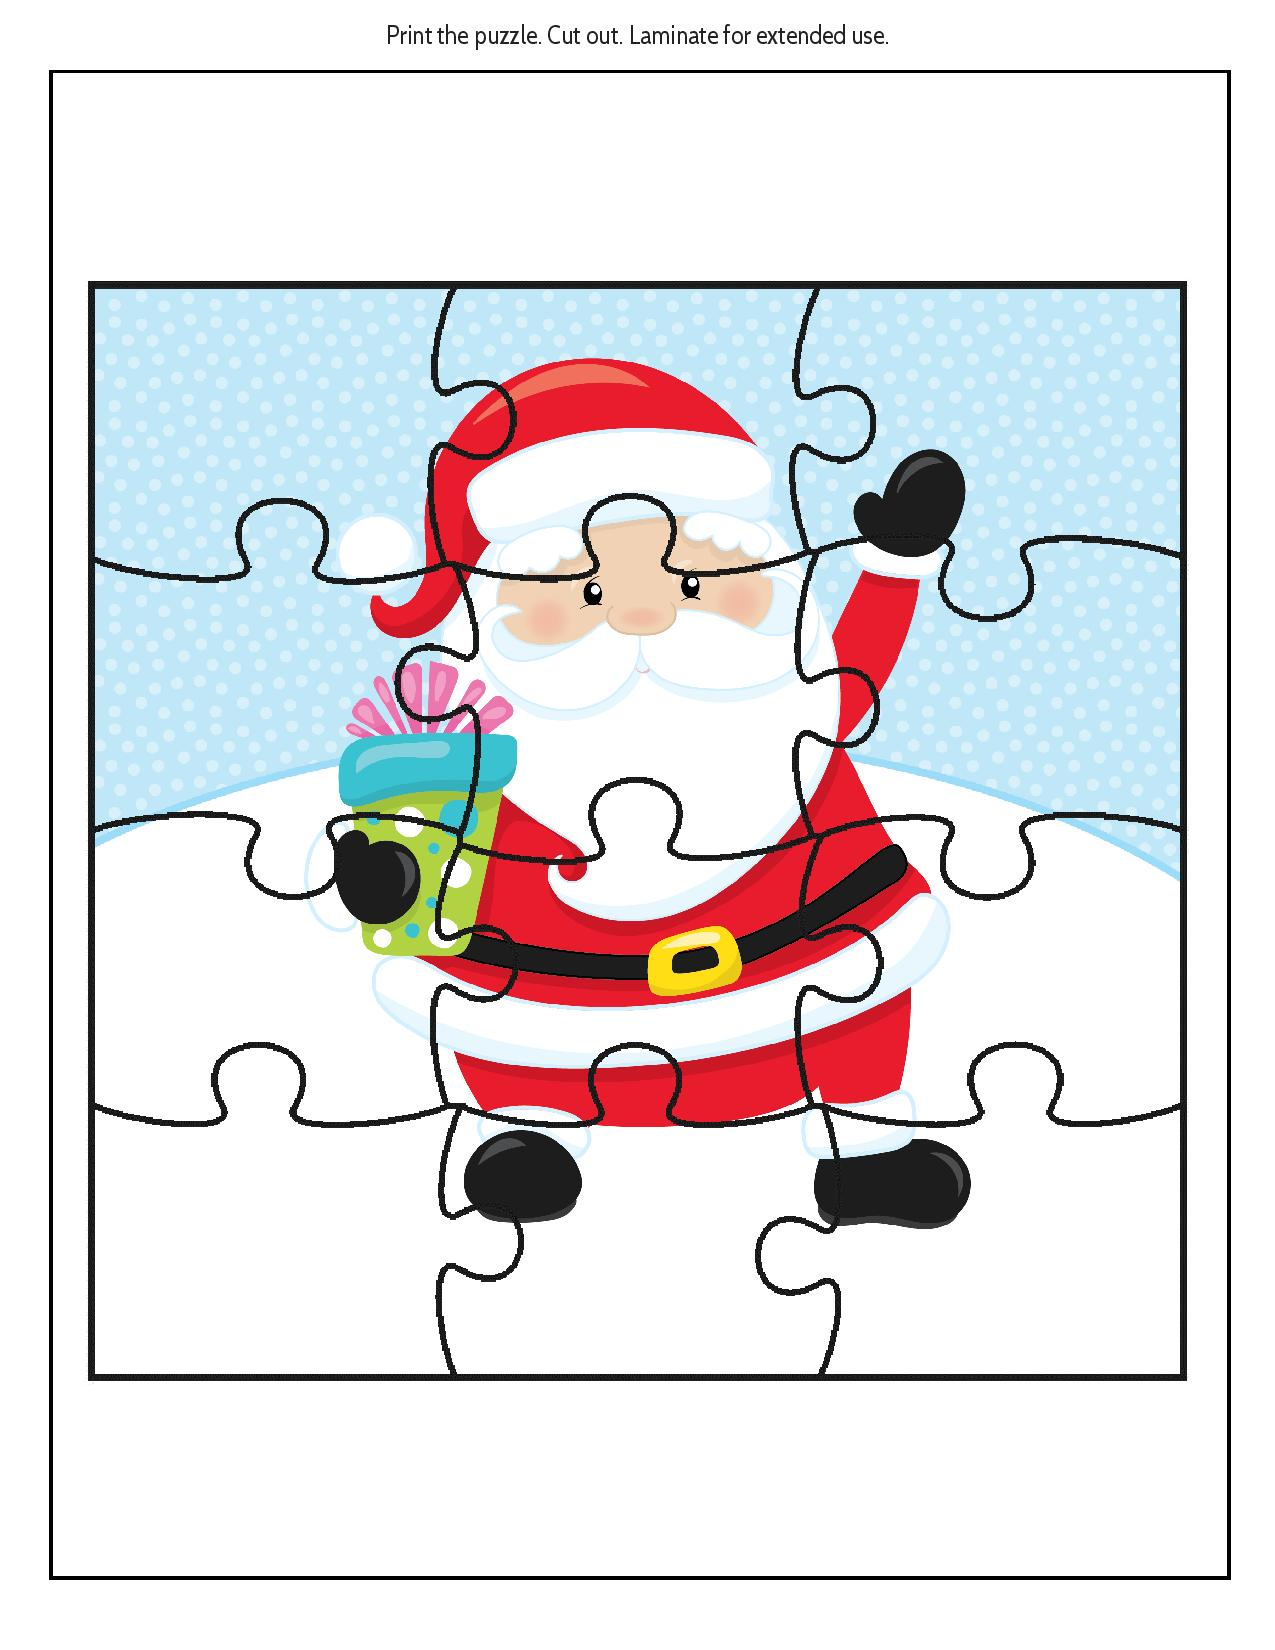 Christmas Jigsaw Puzzle as part of a FREE Printable Educational Christmas Puzzle Pack